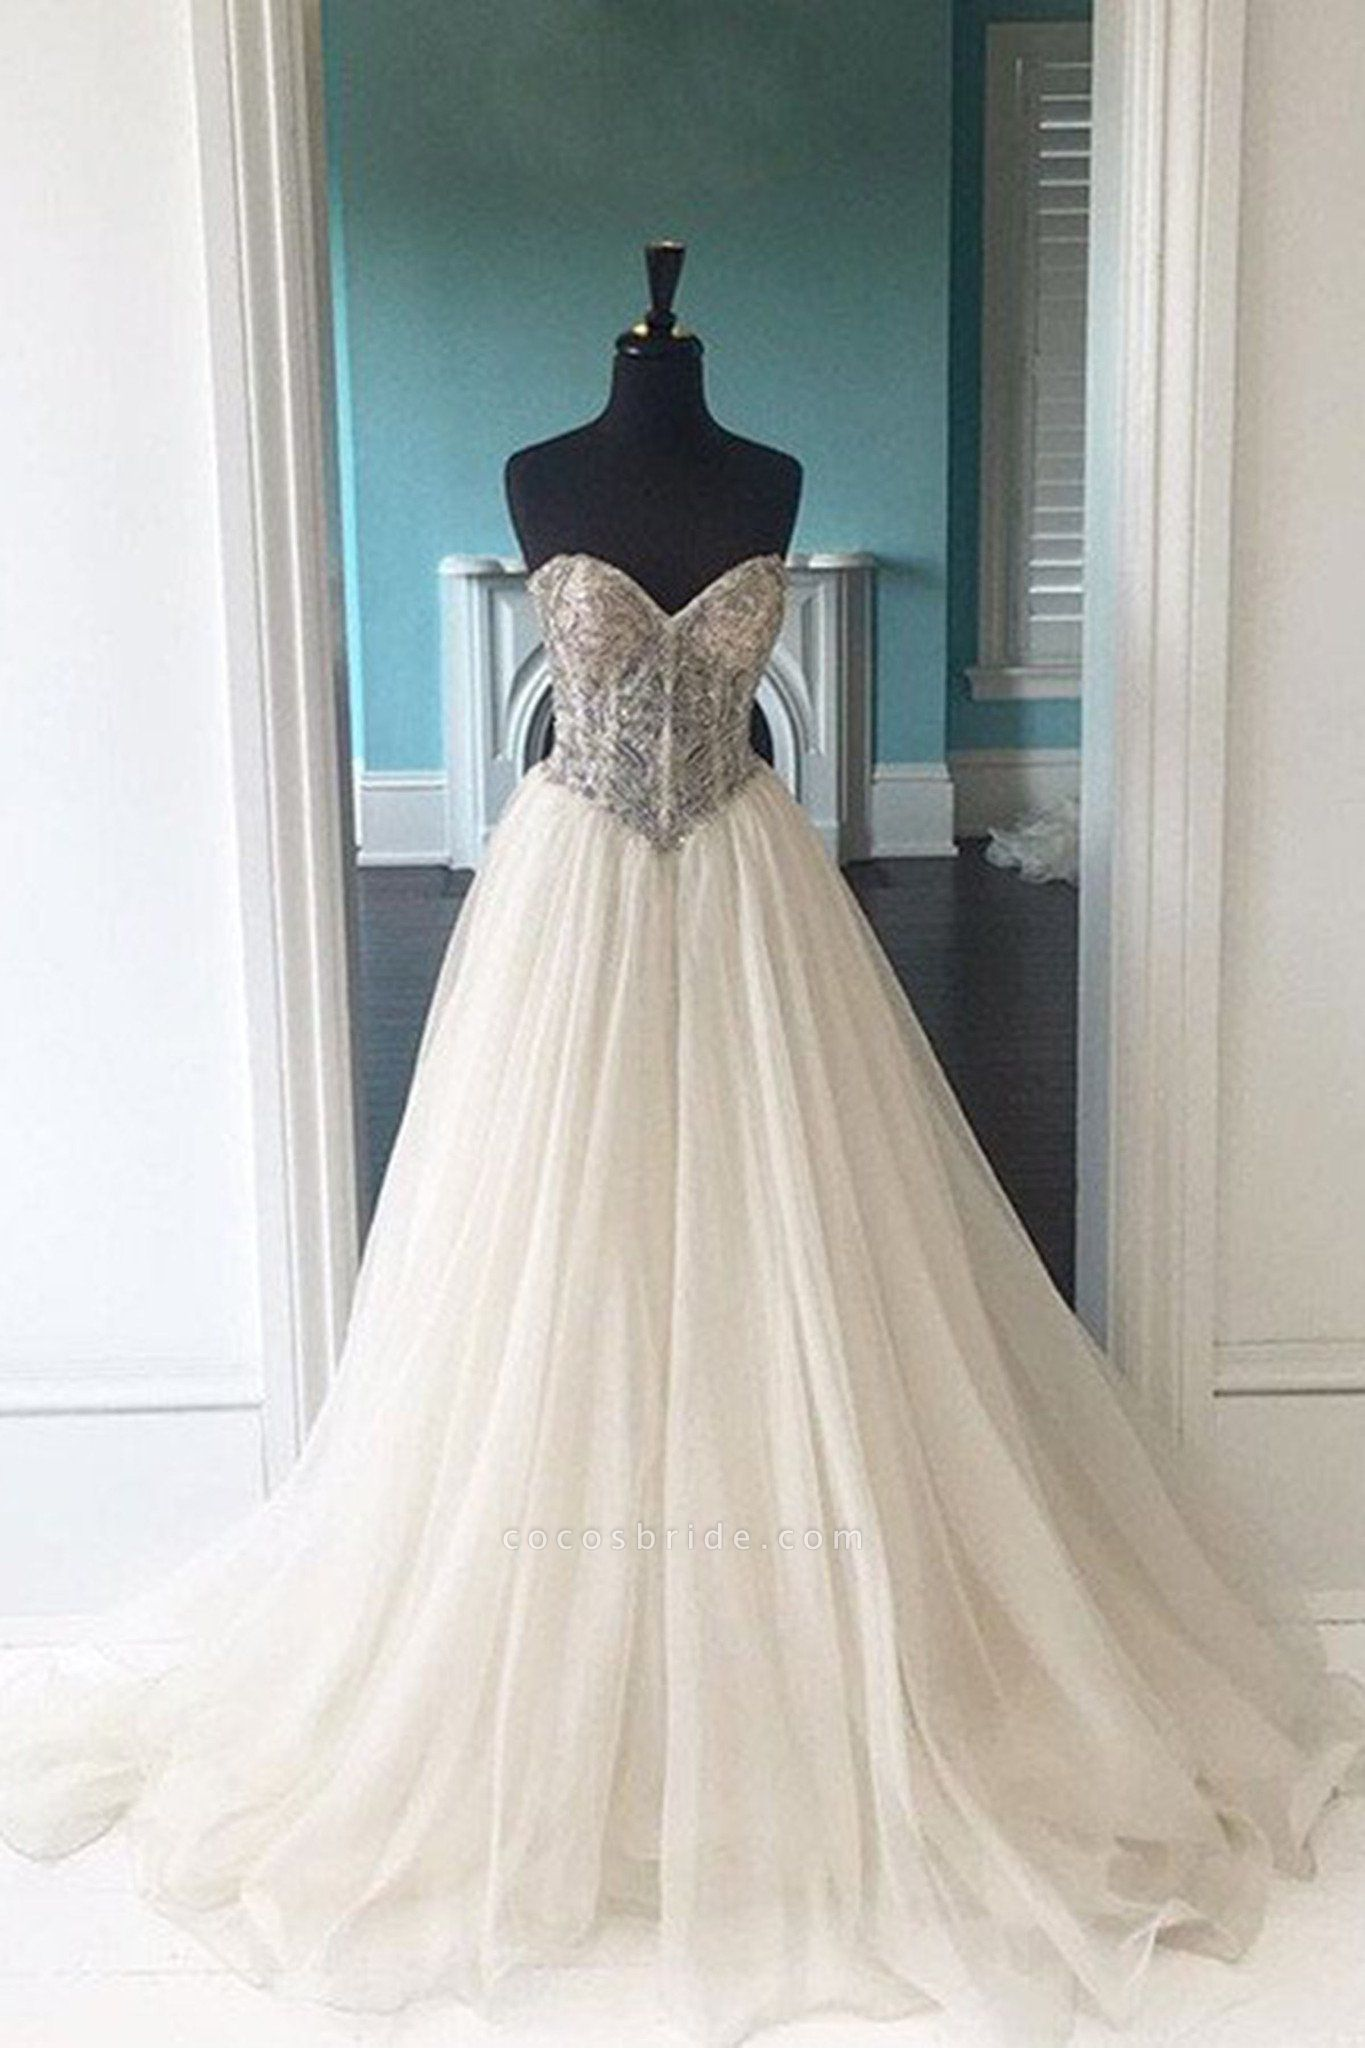 White Organza Lace Sweetheart Ball Gown Dress